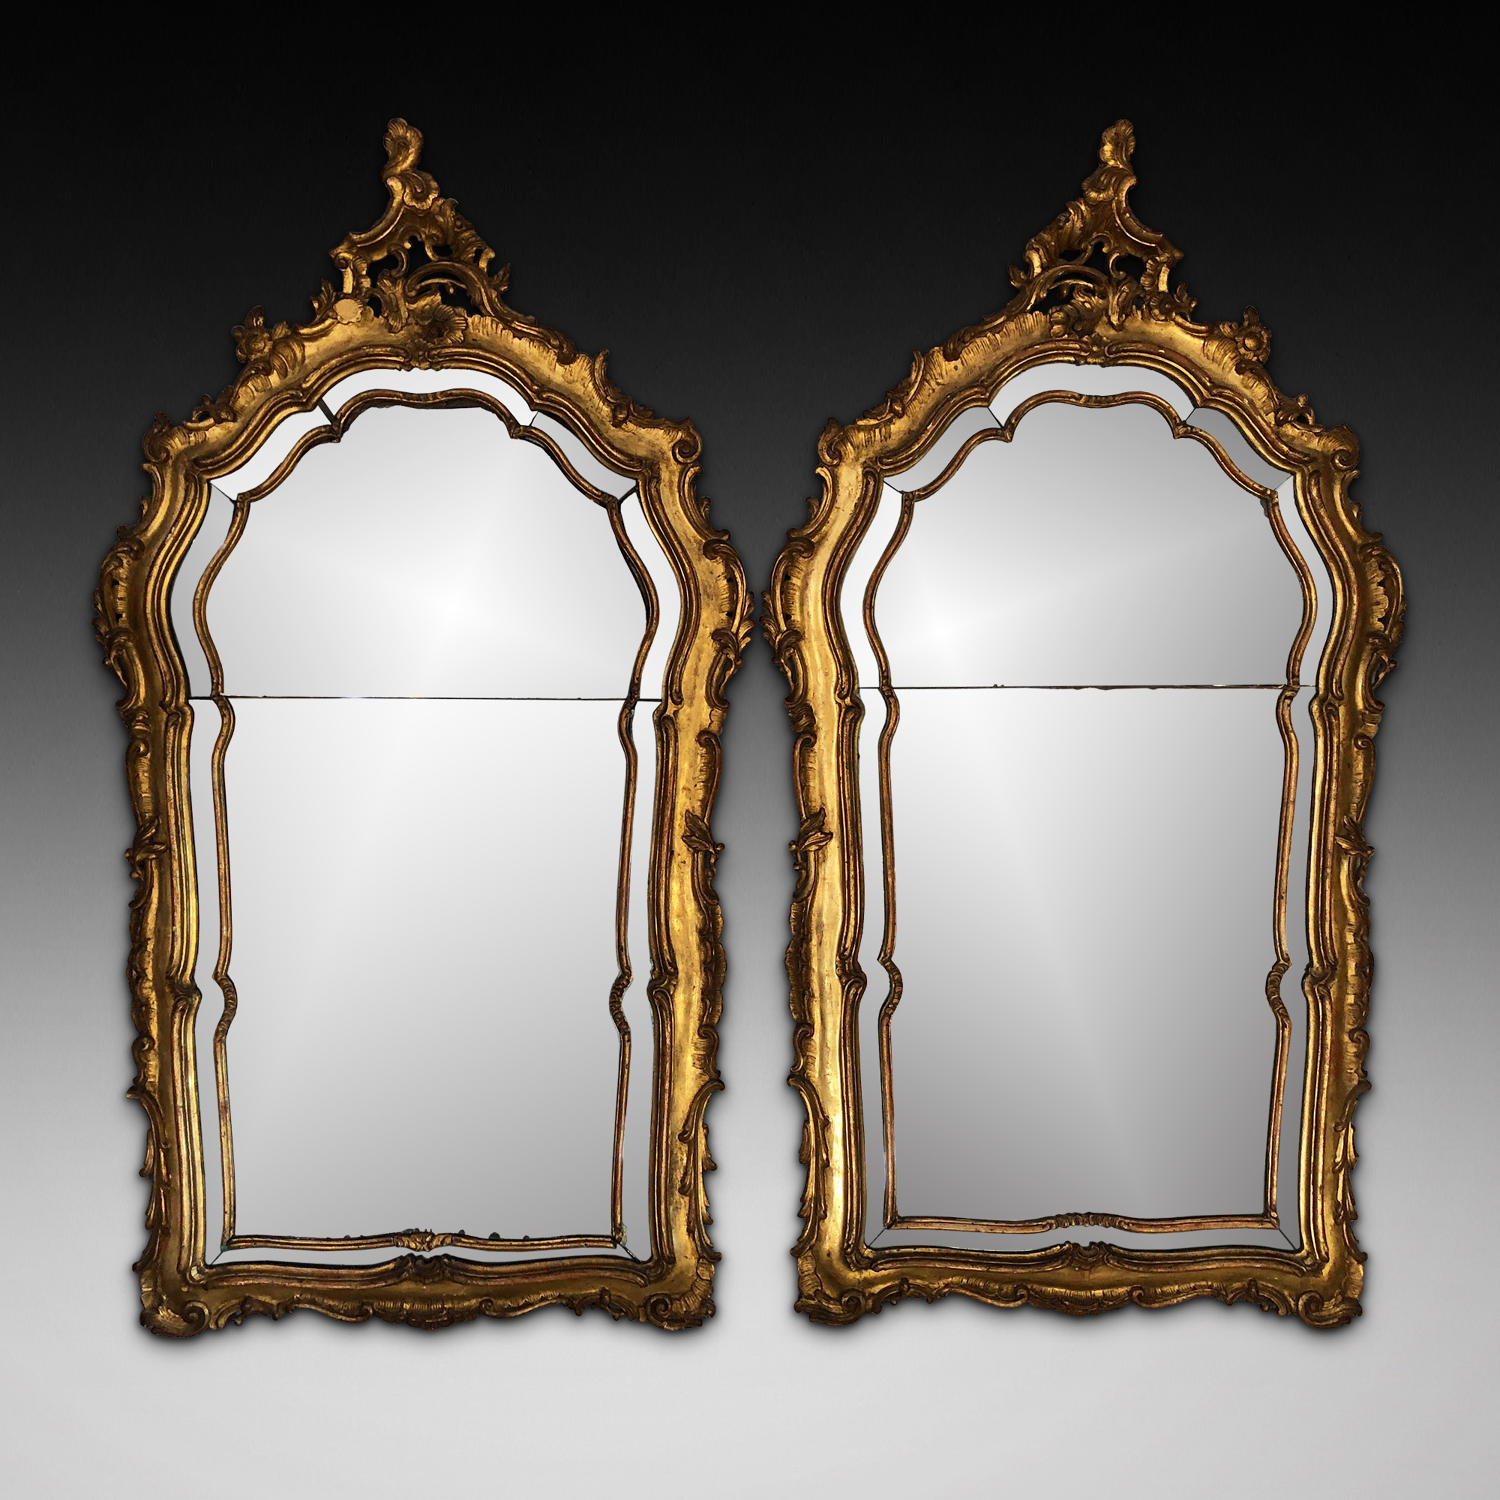 A PAIR OF 18TH CENTURY CARVED GILTWOOD MIRRORS